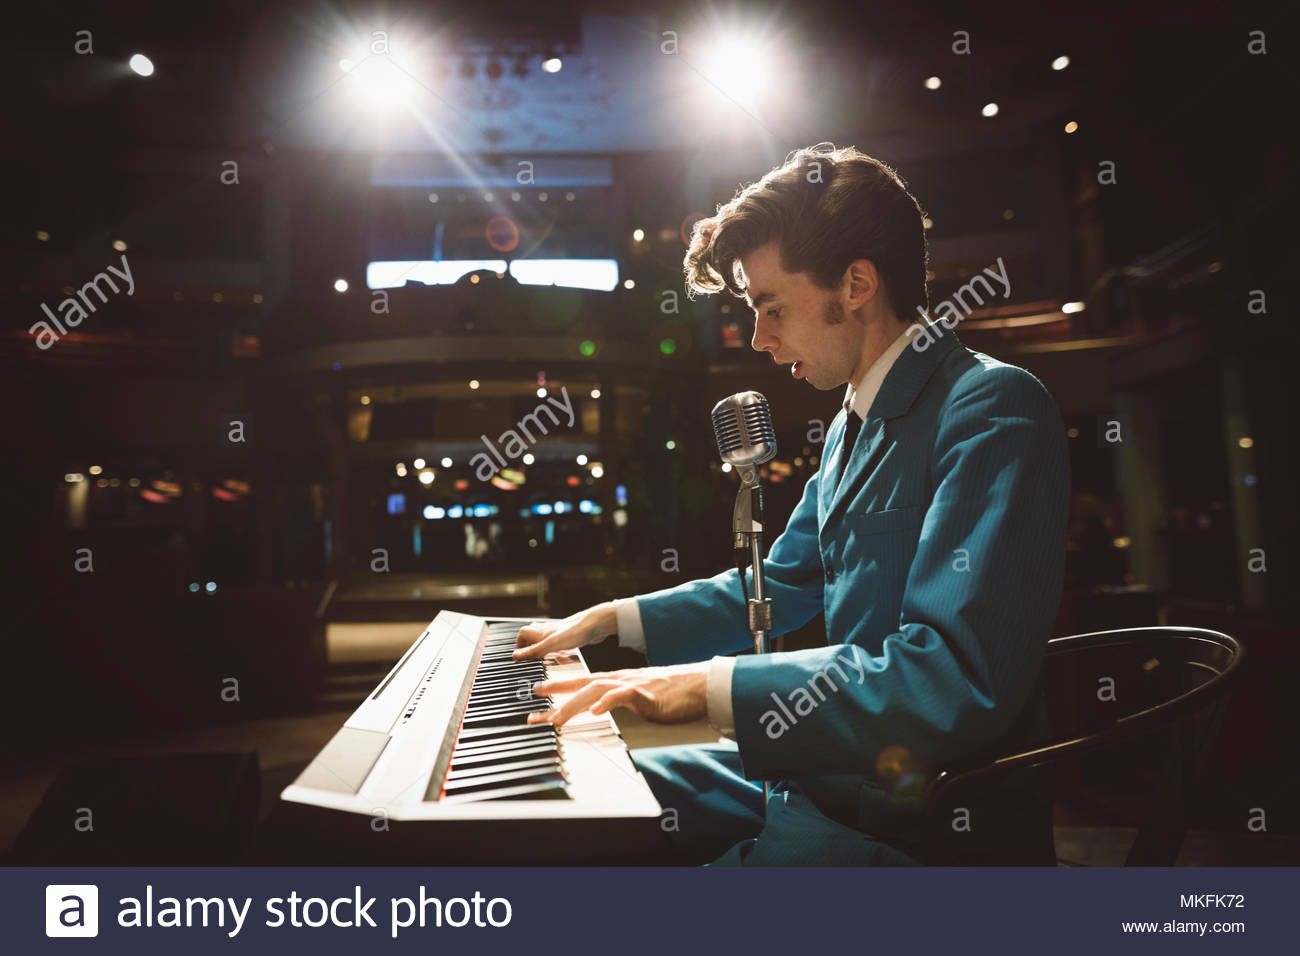 Rockabilly musician playing electric piano on stage - Stock Image